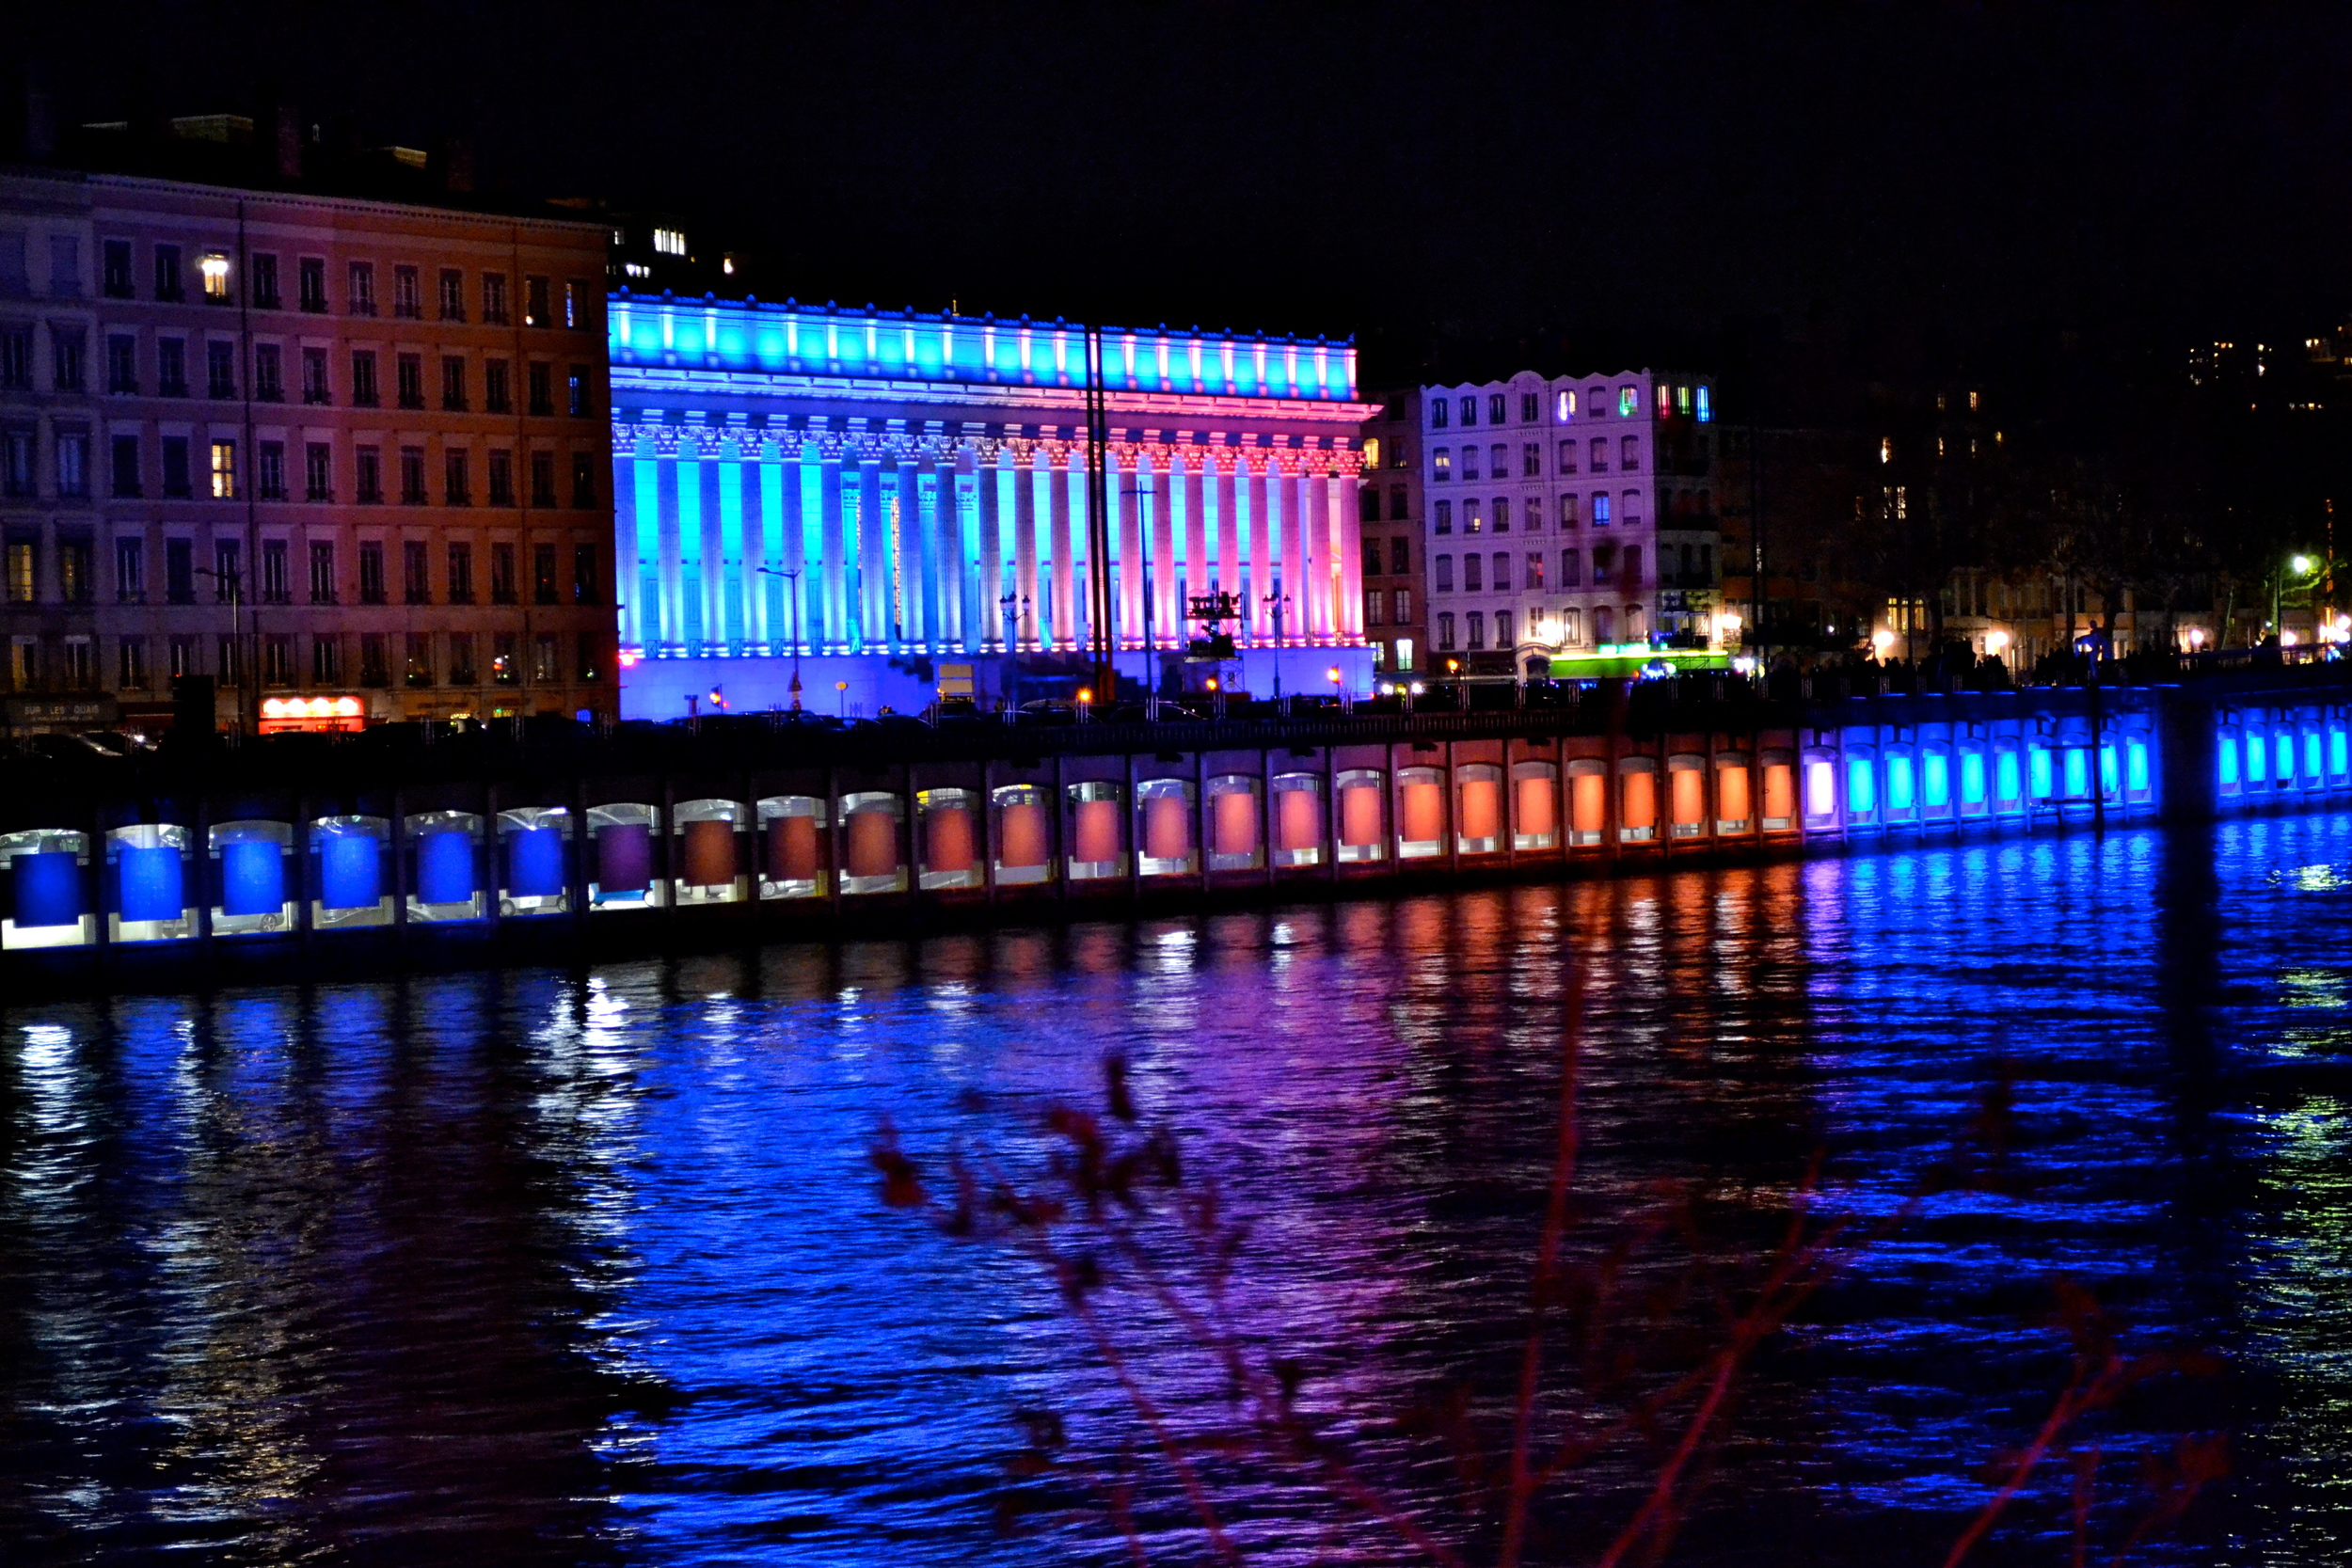 An illuminated building set to a classical music soundtrack